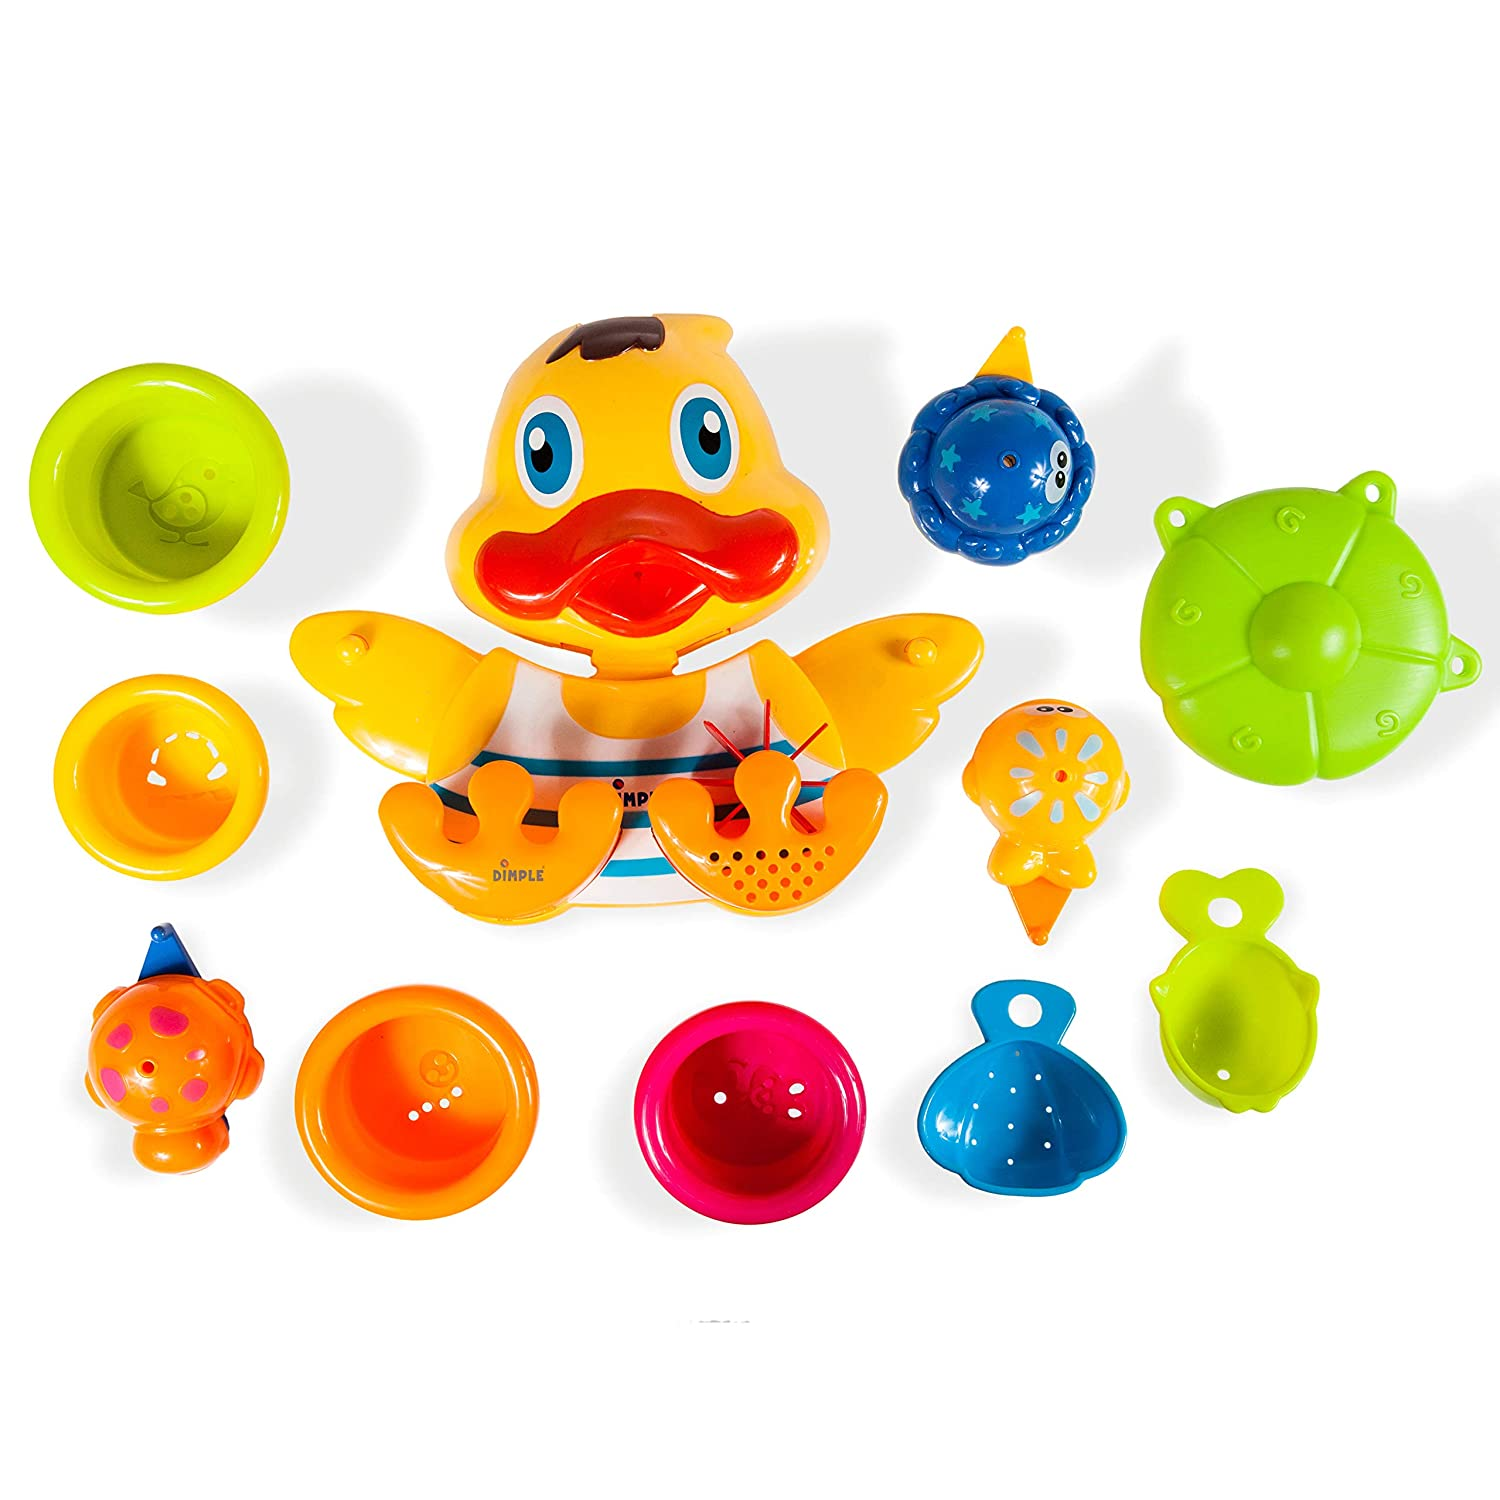 Rubber Duck Wall Mounted Bath Toy with Scoop Cups and Interconnecting Floatable Sea Animal Toys DimpleChild DC11555